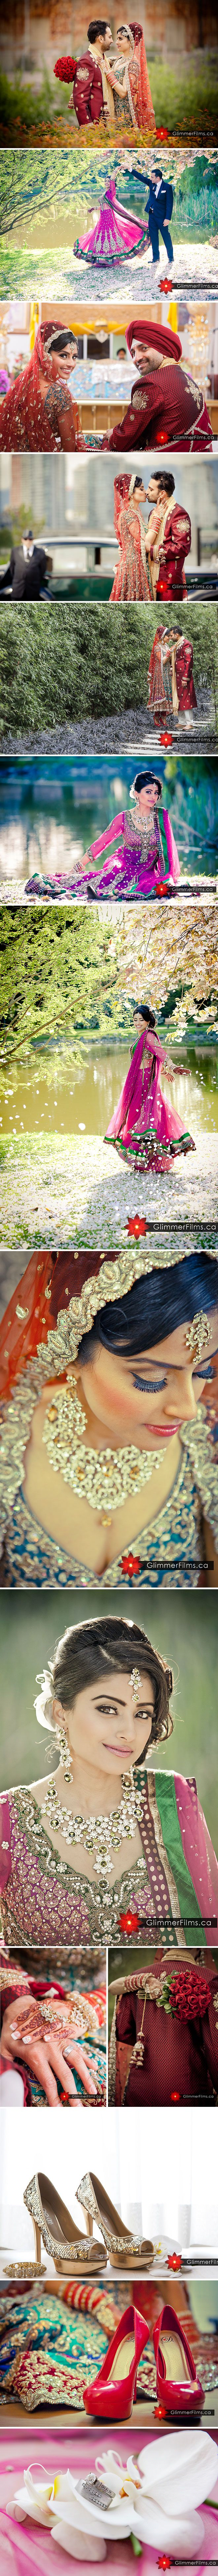 Indian wedding photography. Couple photo shoot ideas. Photo Credits…